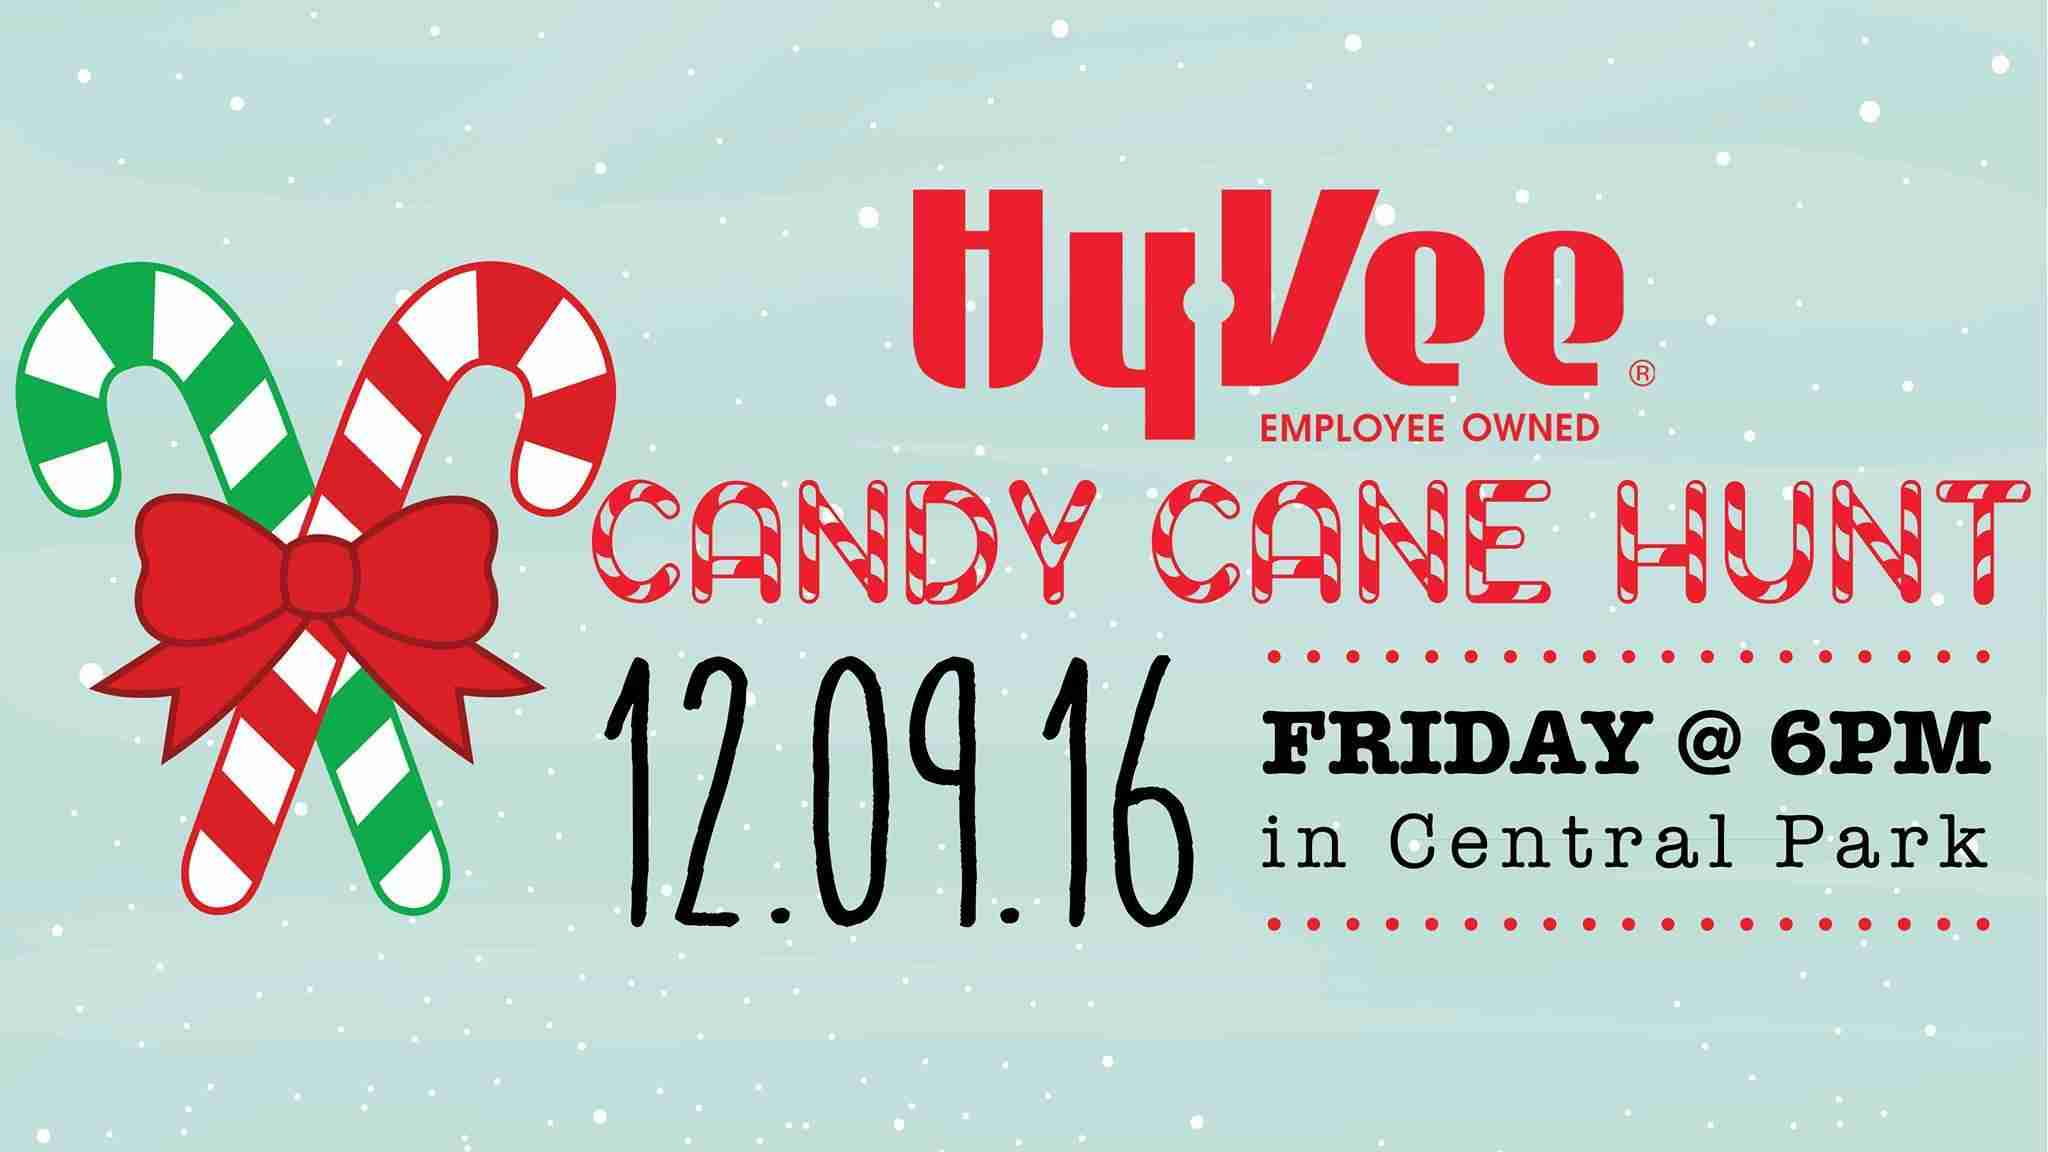 candy cane hunt coming to charles city - Hyvee Christmas Eve Hours